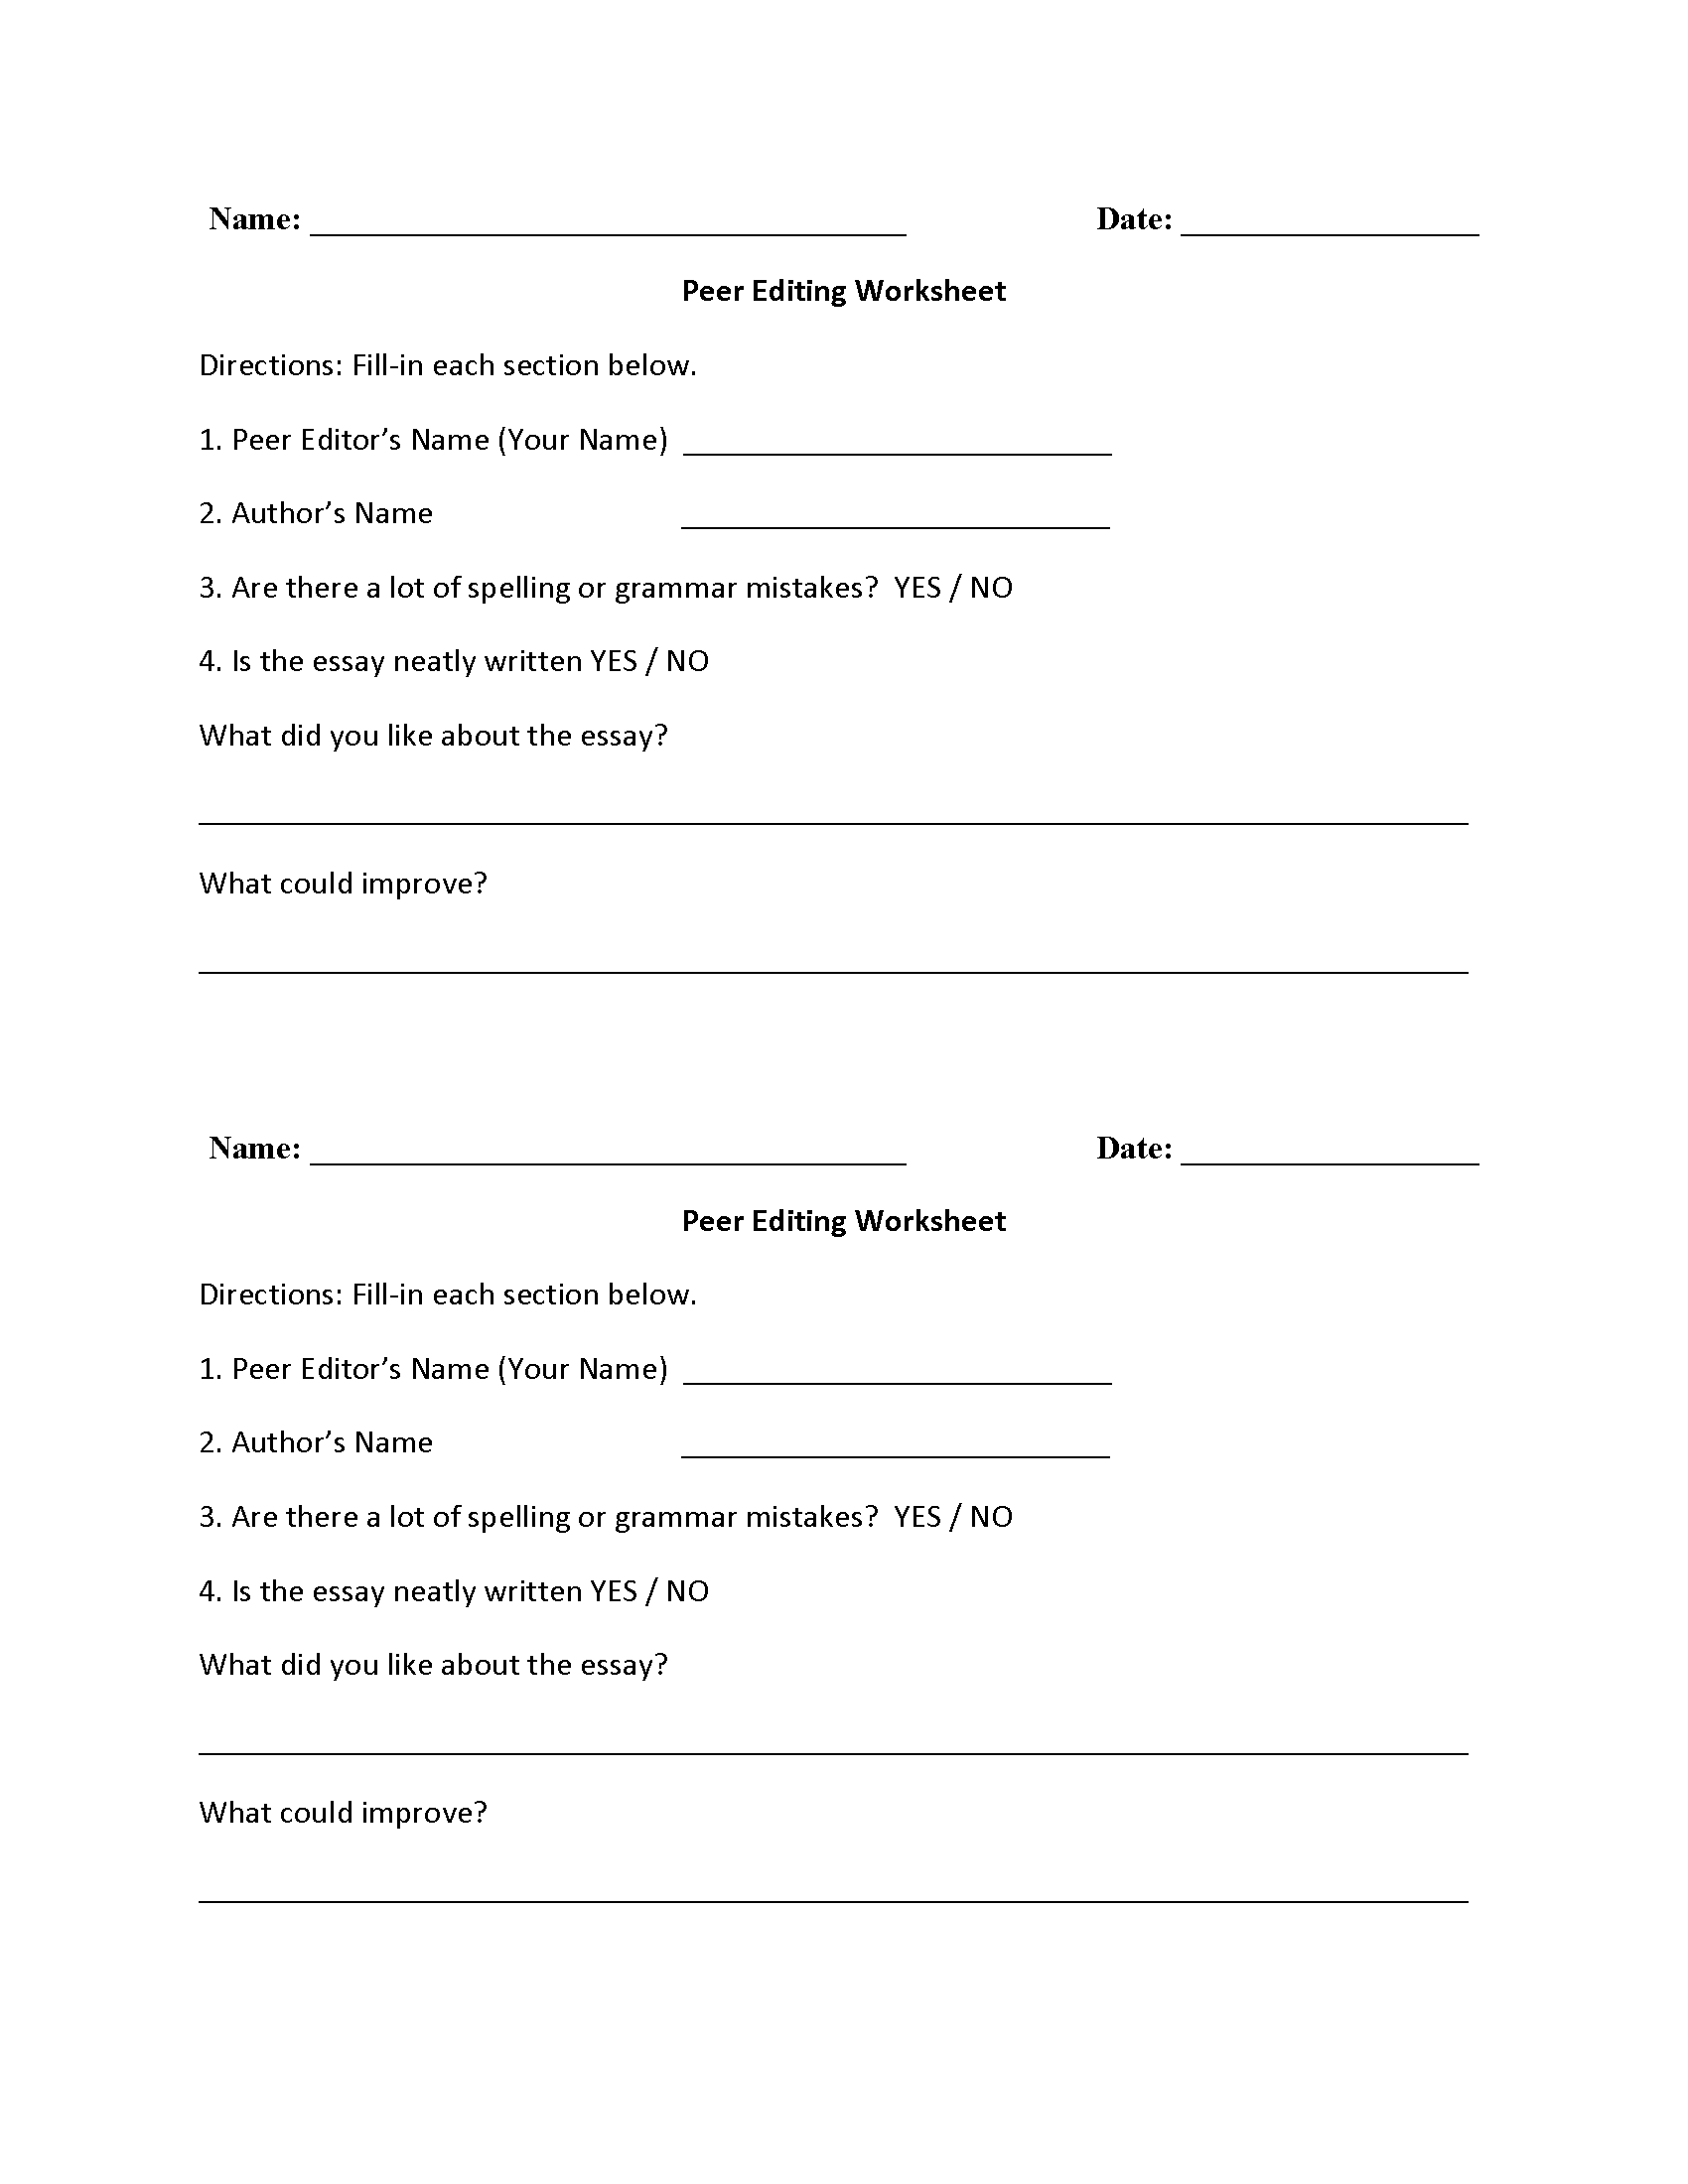 Writing Worksheets | Editing Worksheets